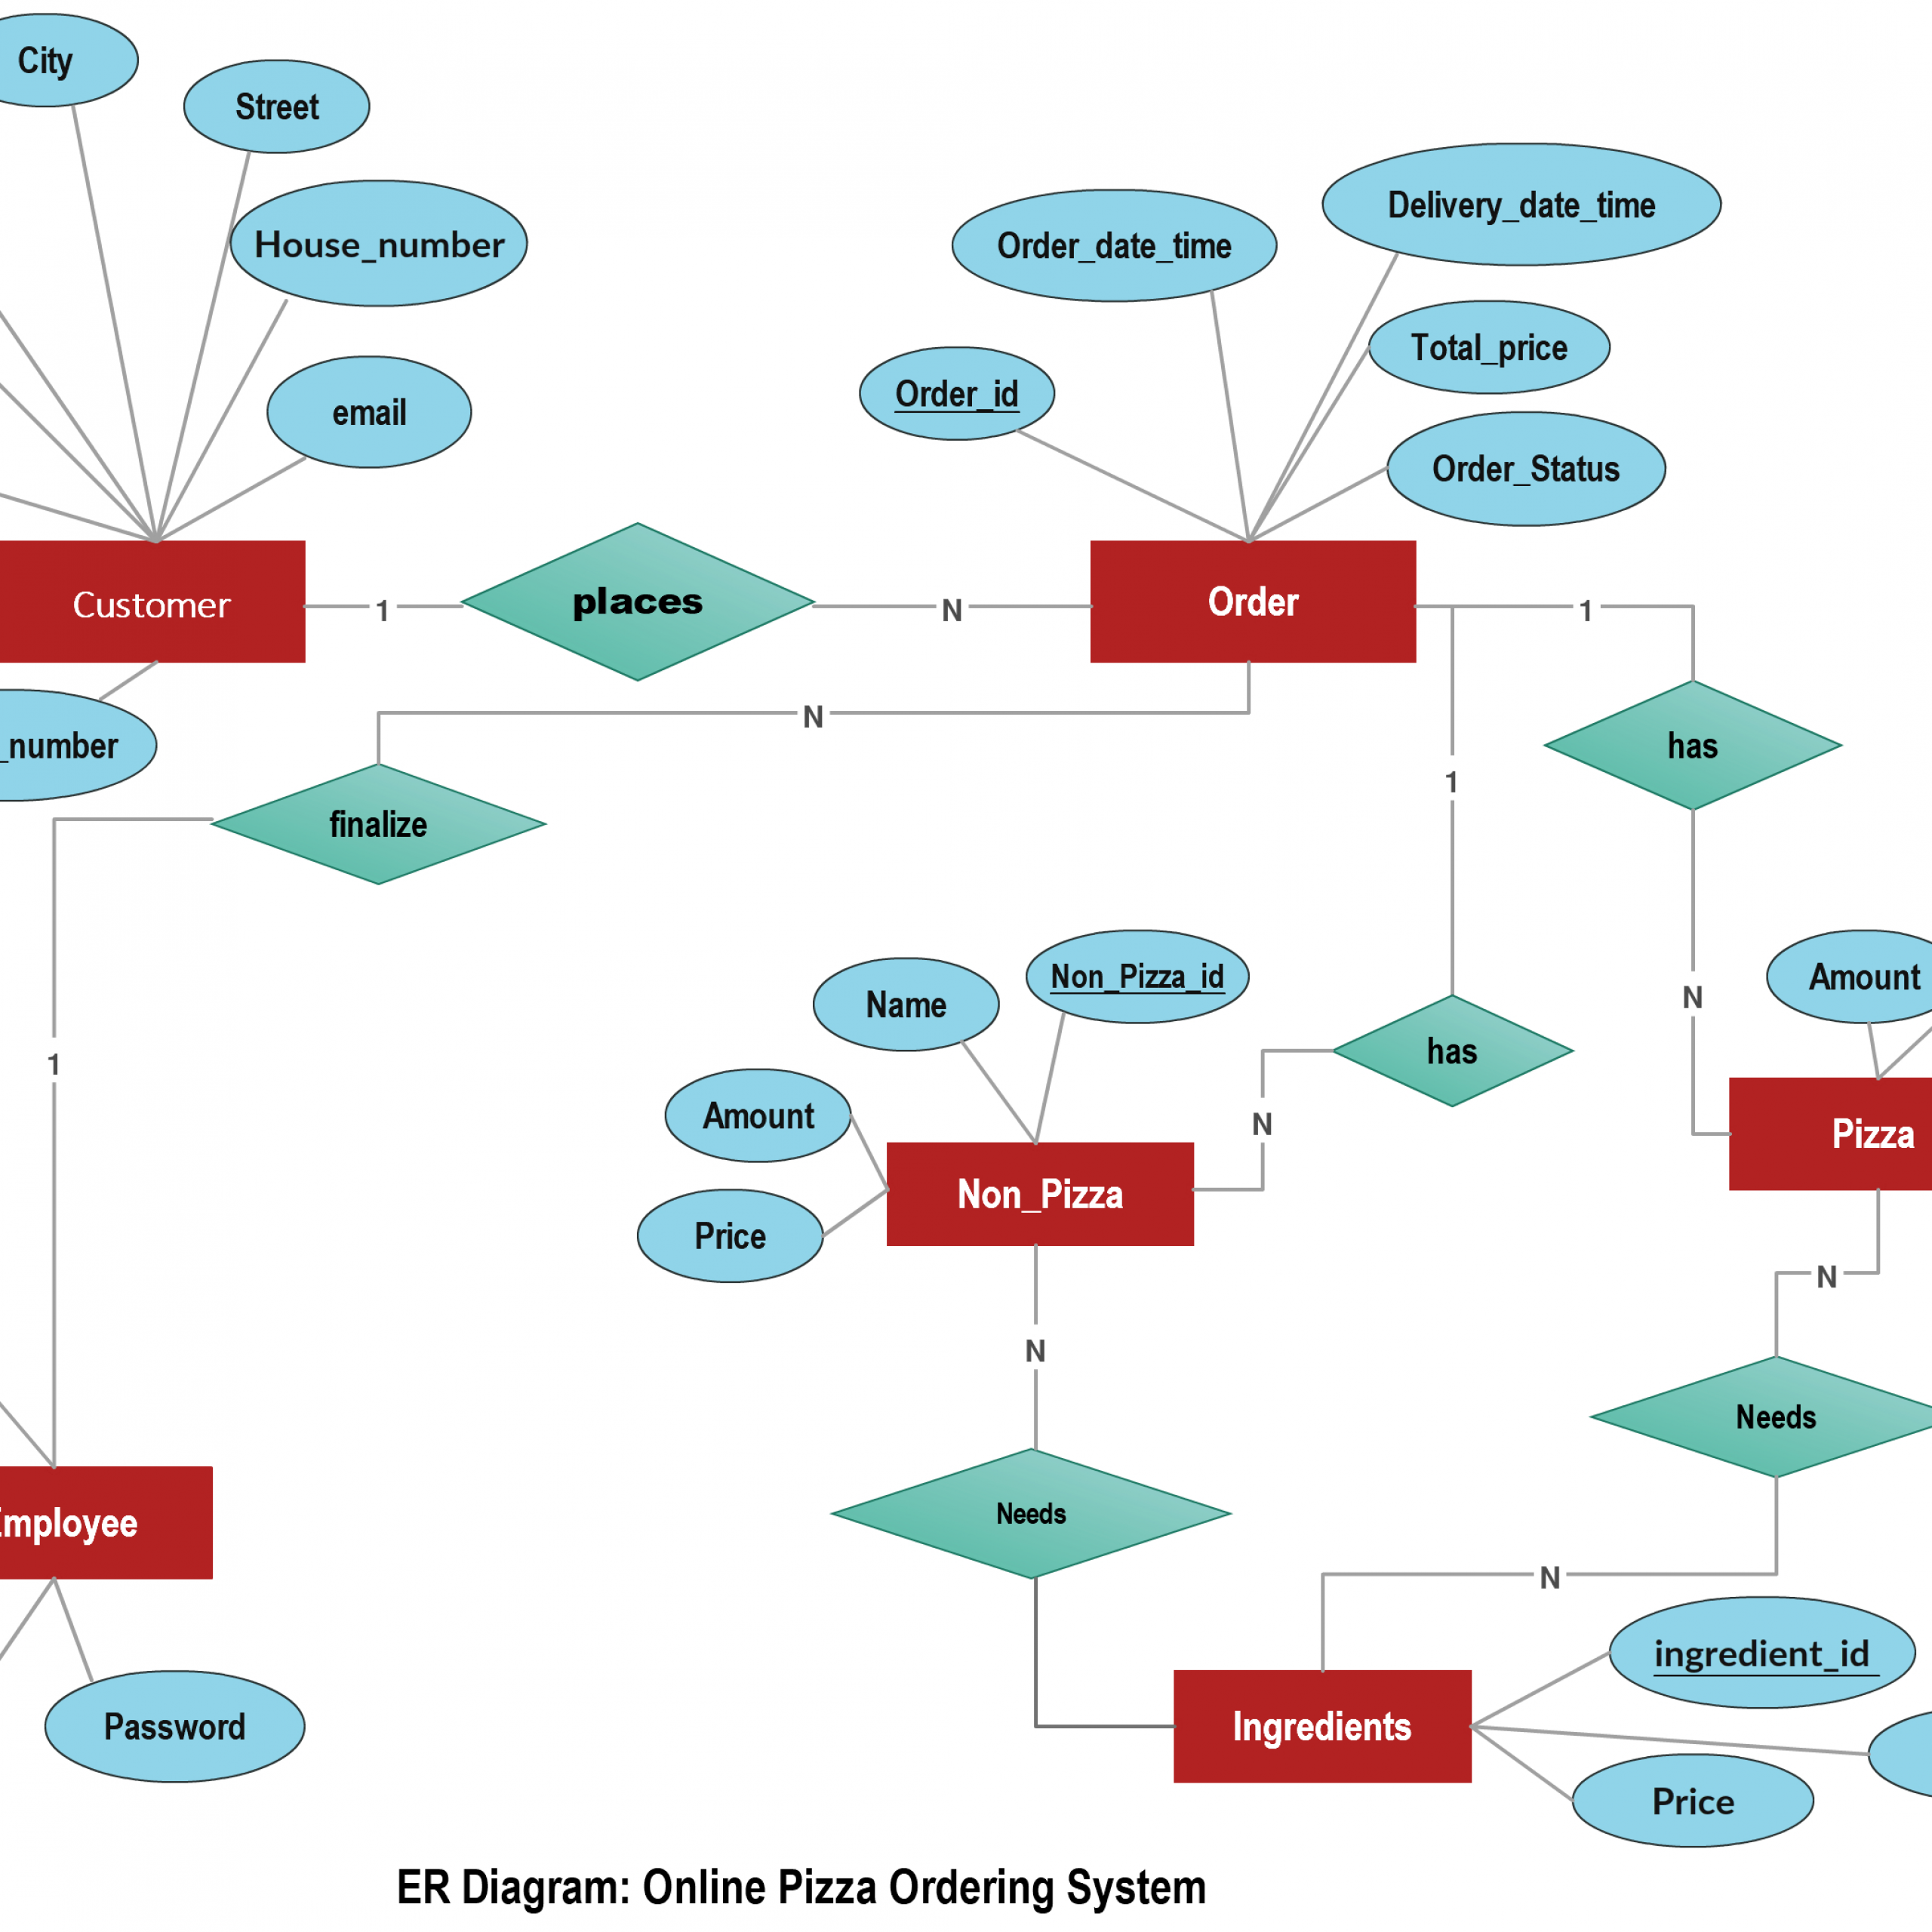 Online Pizza Ordering System Illustrated Using An Er Diagram with regard to Entity Diagram Online